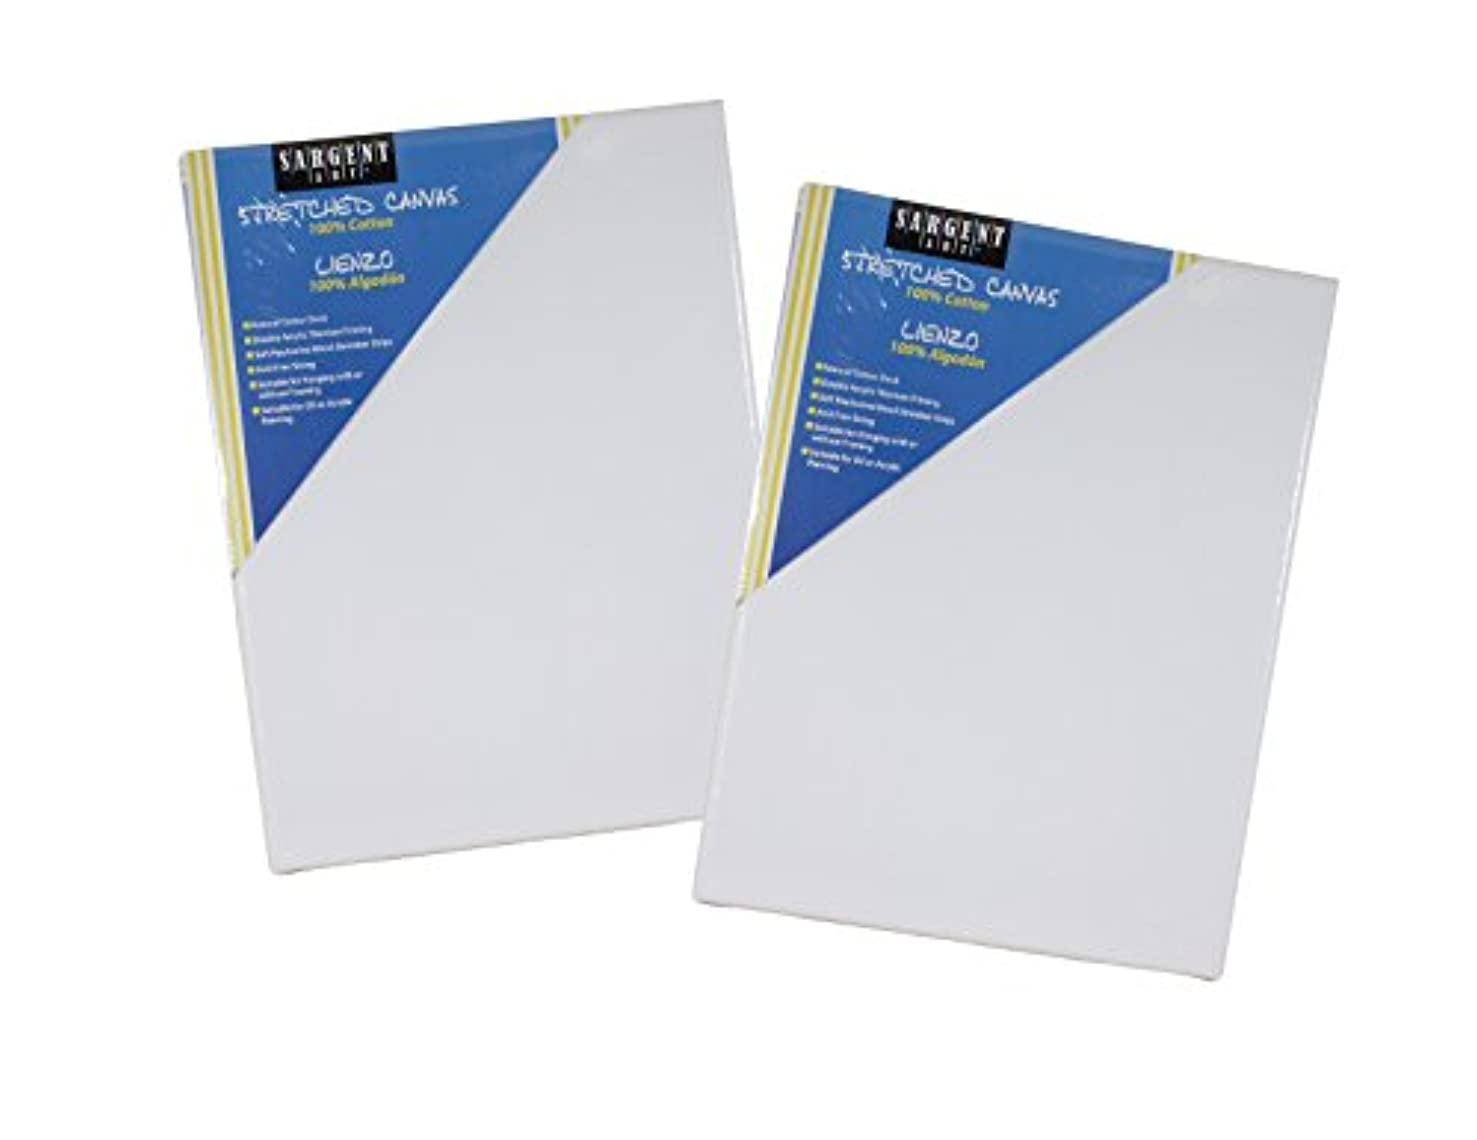 Sargent Art Value Pack 11 x 14 Inch Stretched Canvas Pack of 2 2 Piece